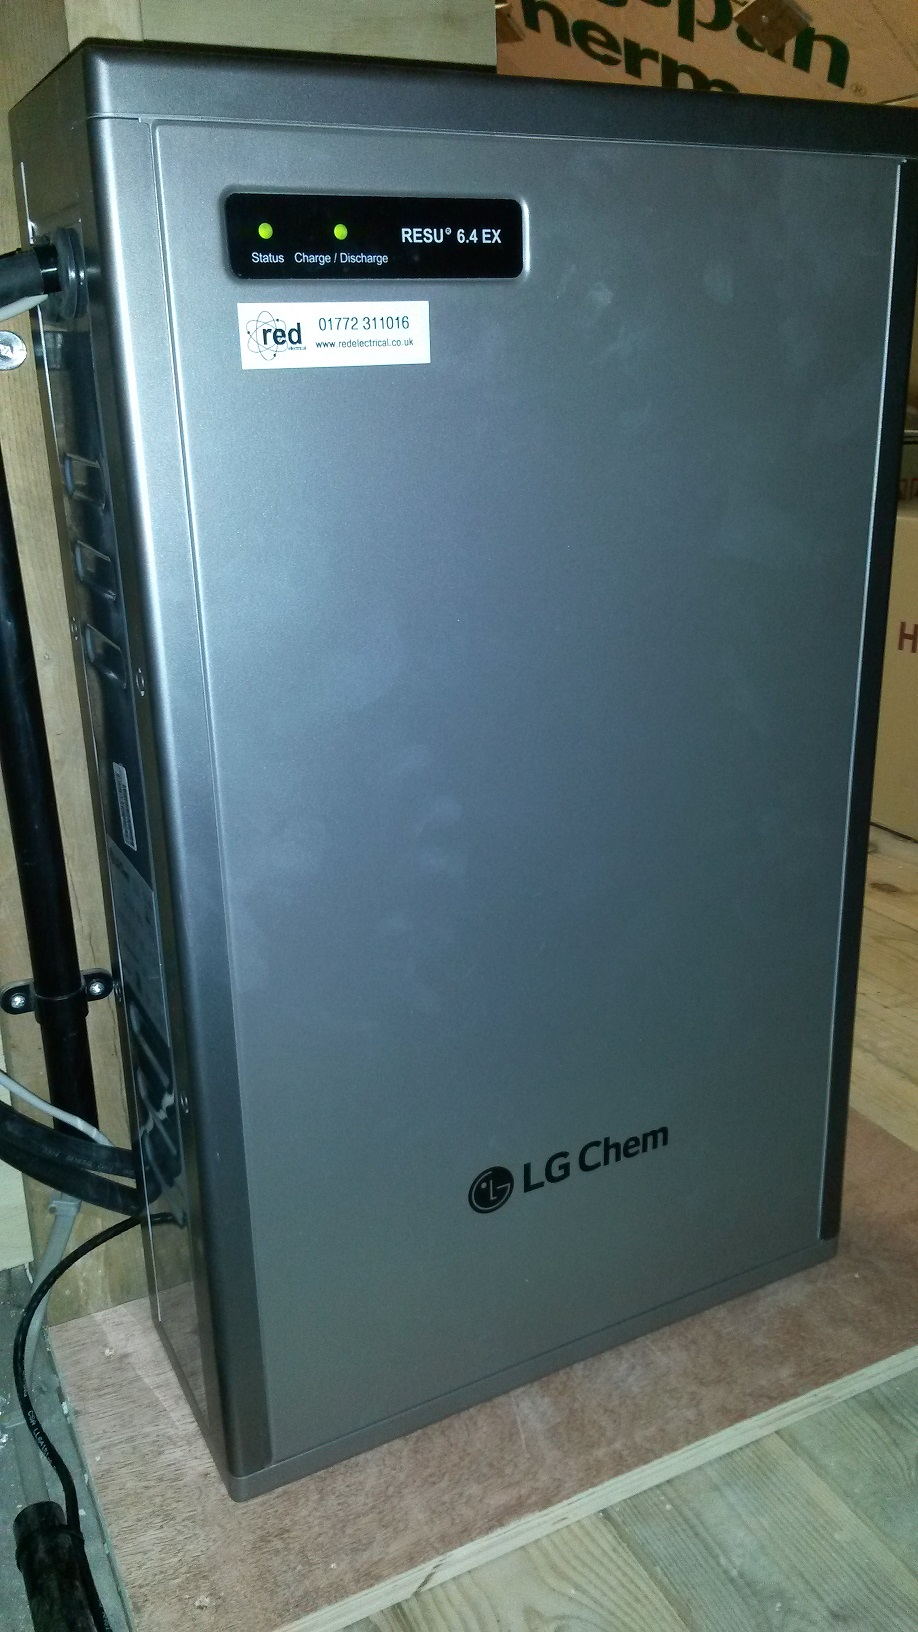 LG Chem 6.4kW lithium battery